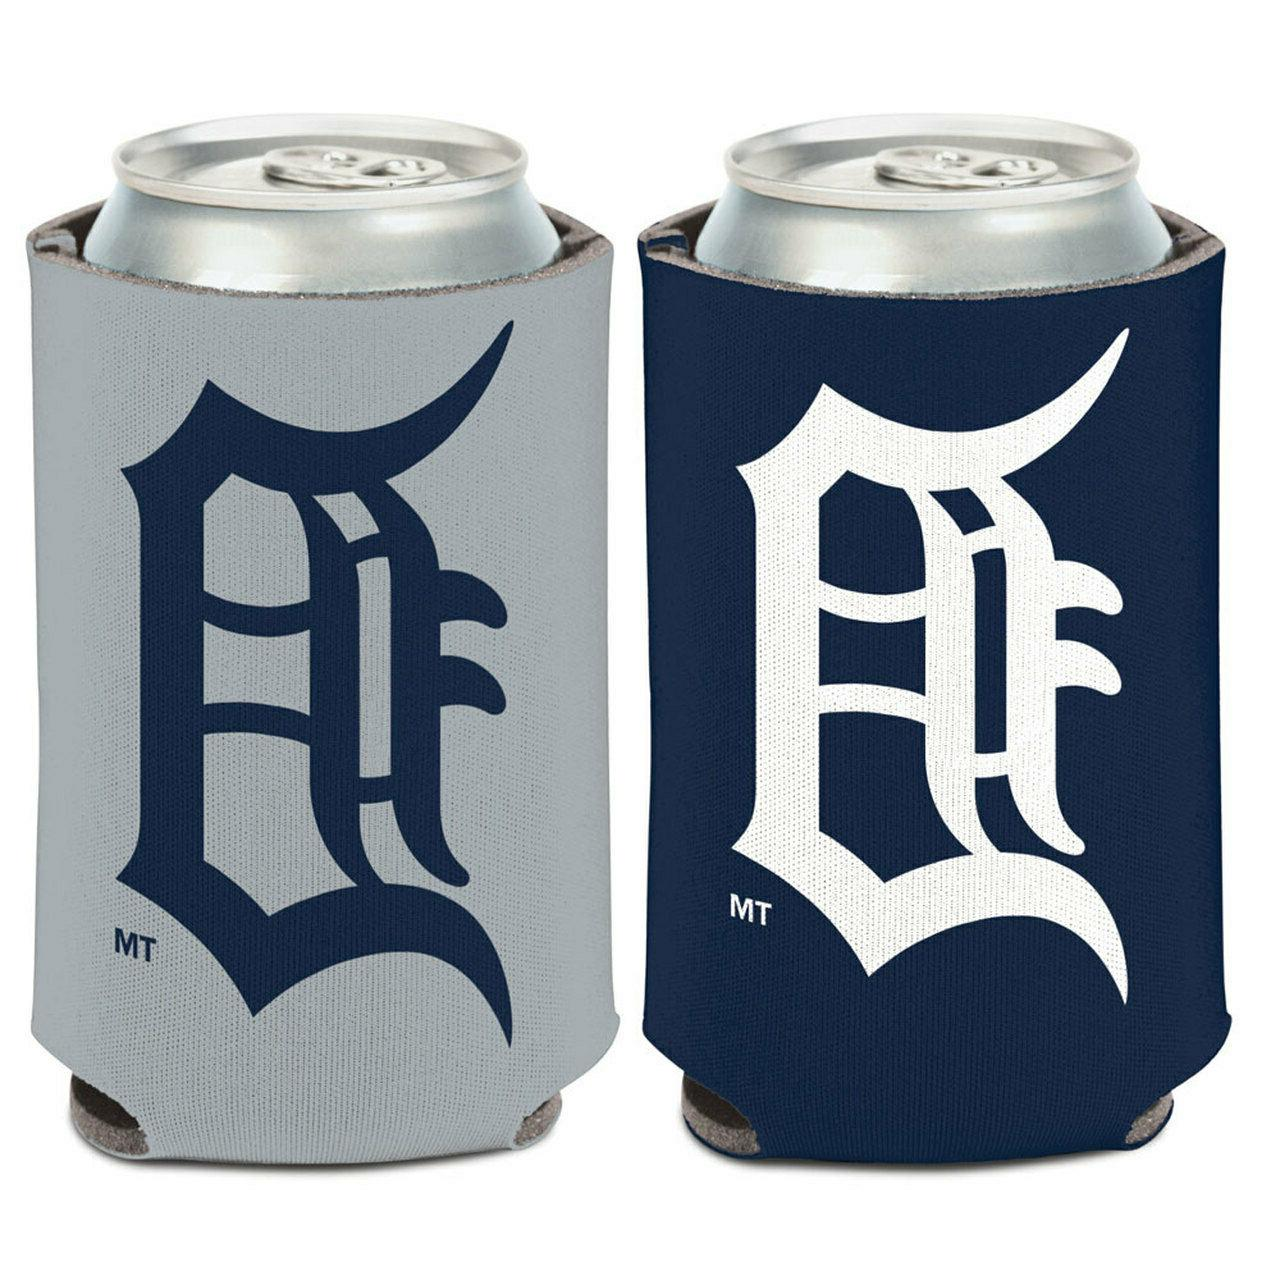 detroit tigers logo can cooler 12oz collapsible